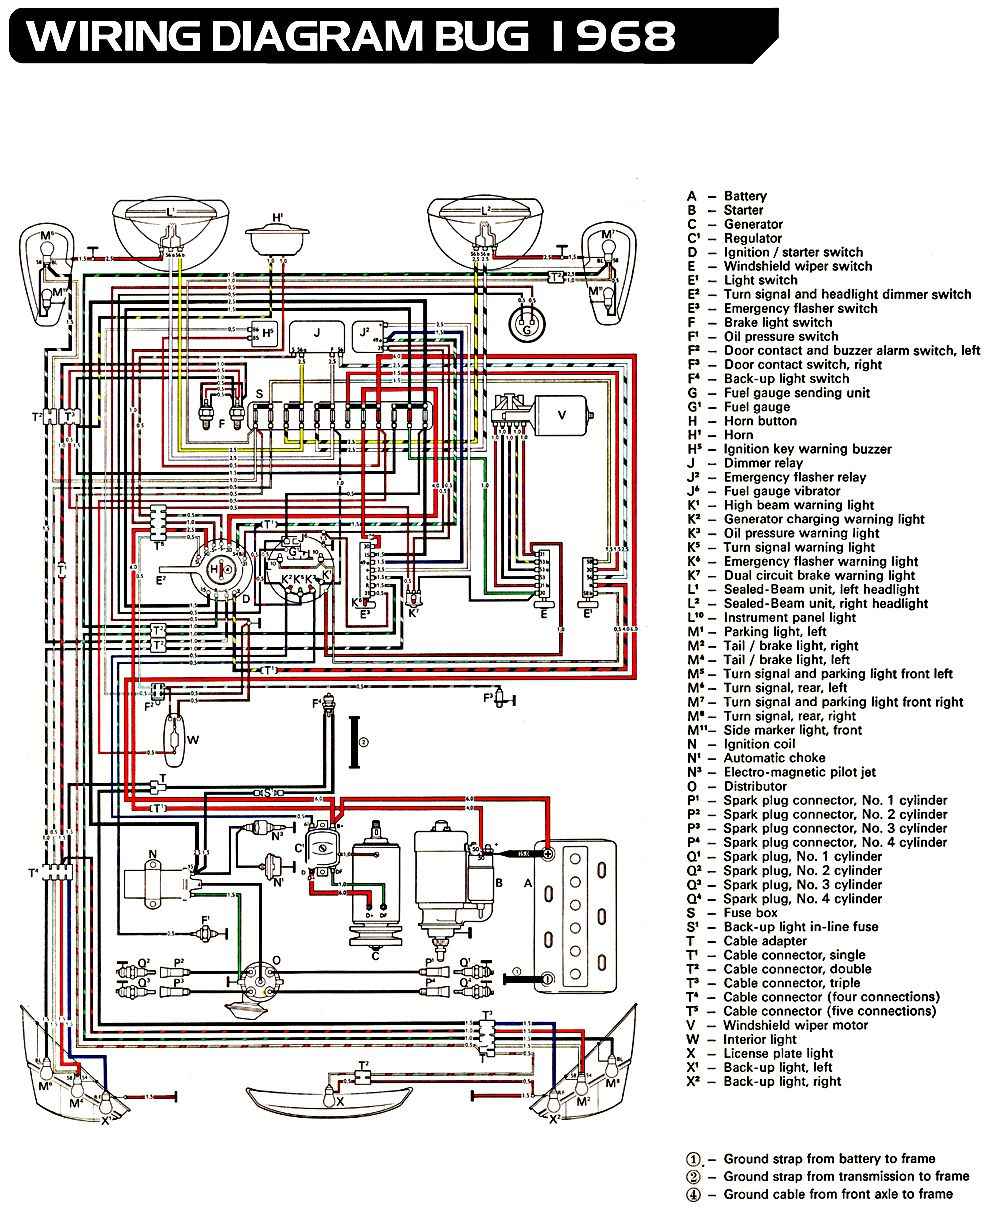 3a1908112d3826270ed5e3be362292bf vw bug ignition wiring diagram 73 vw wiring diagram free 1973 vw beetle wiring diagram at virtualis.co